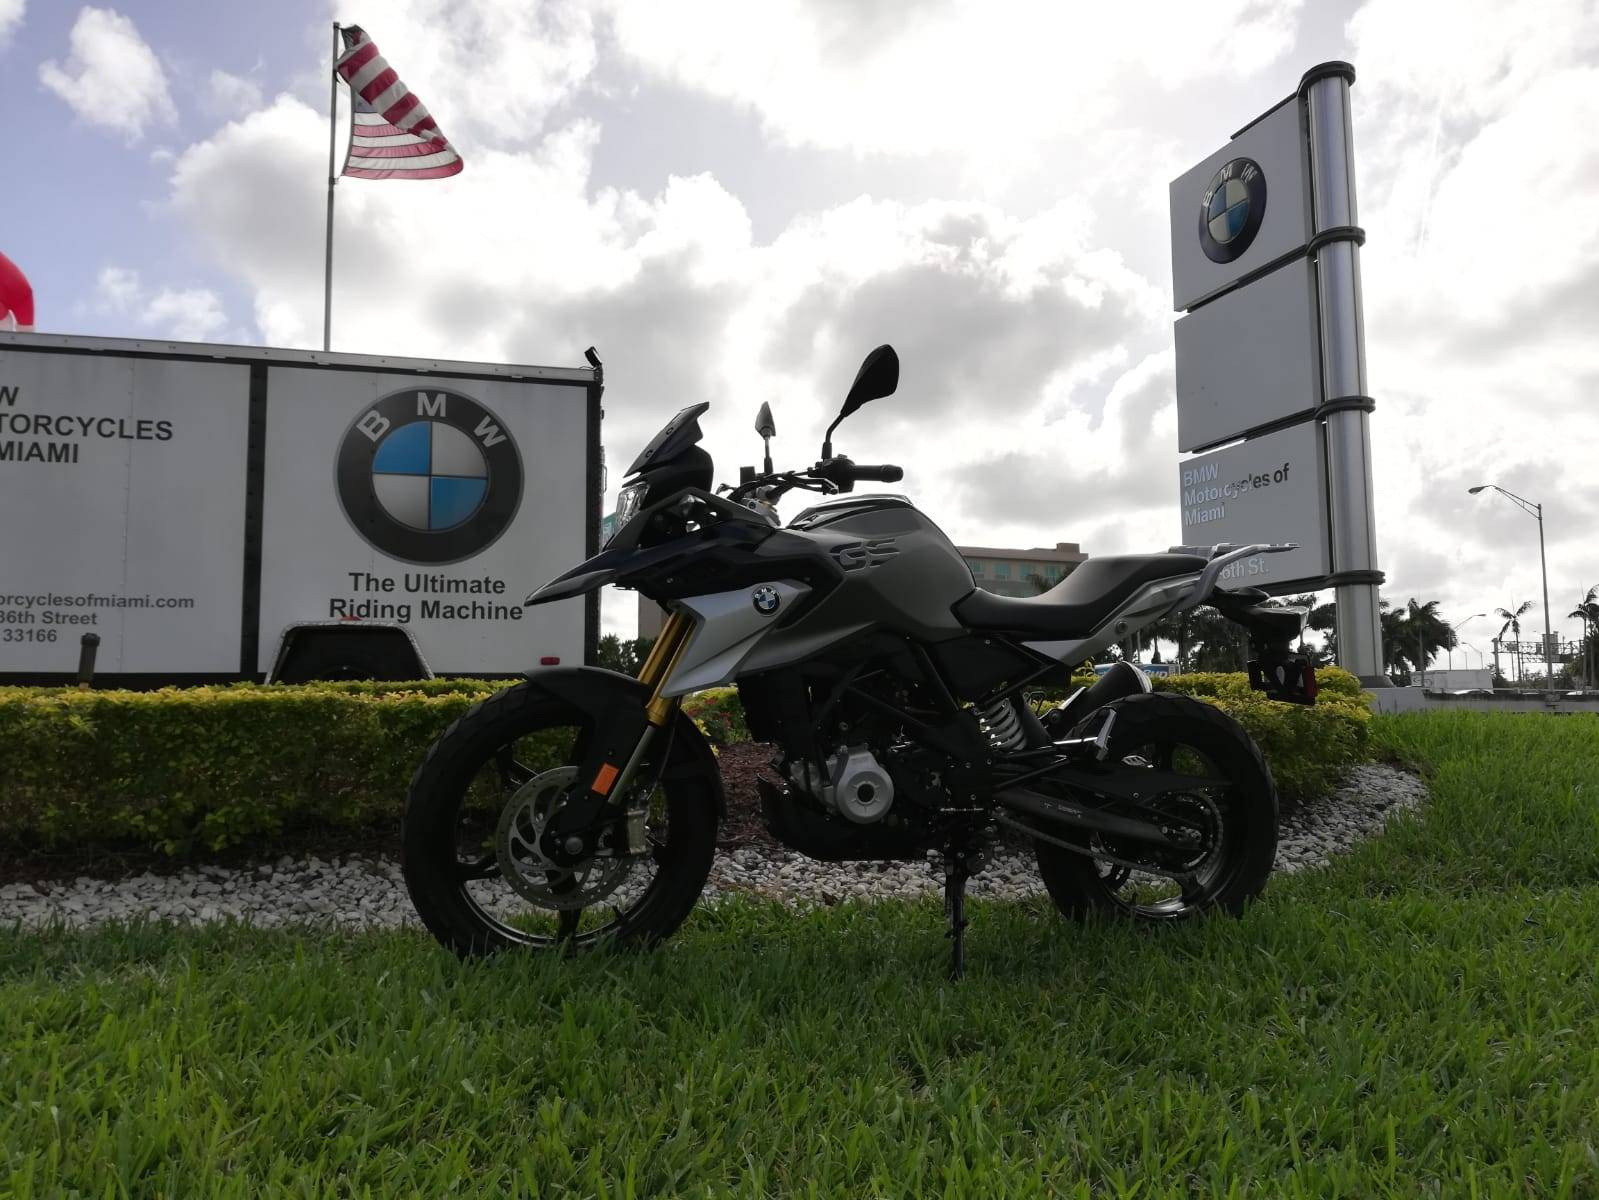 New 2019 Bmw G 310 Gs Motorcycles In Miami Fl